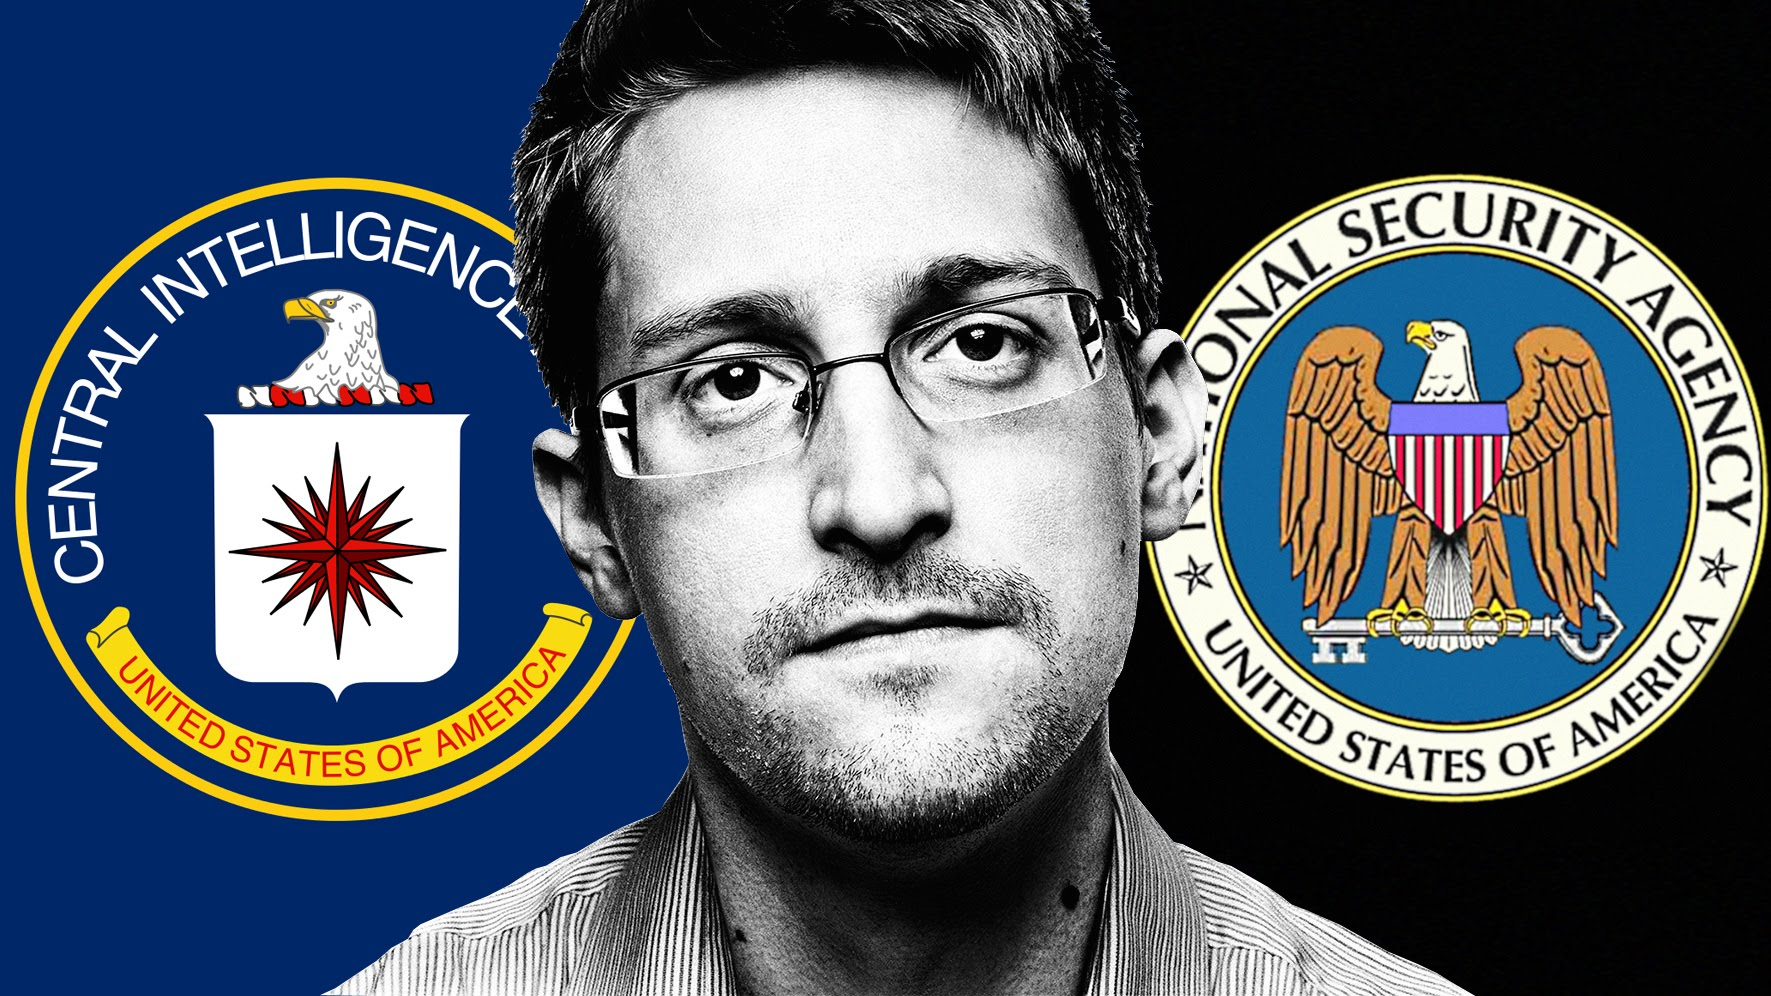 Edward Snowden Says NSA Leaks are a Warning to the United States